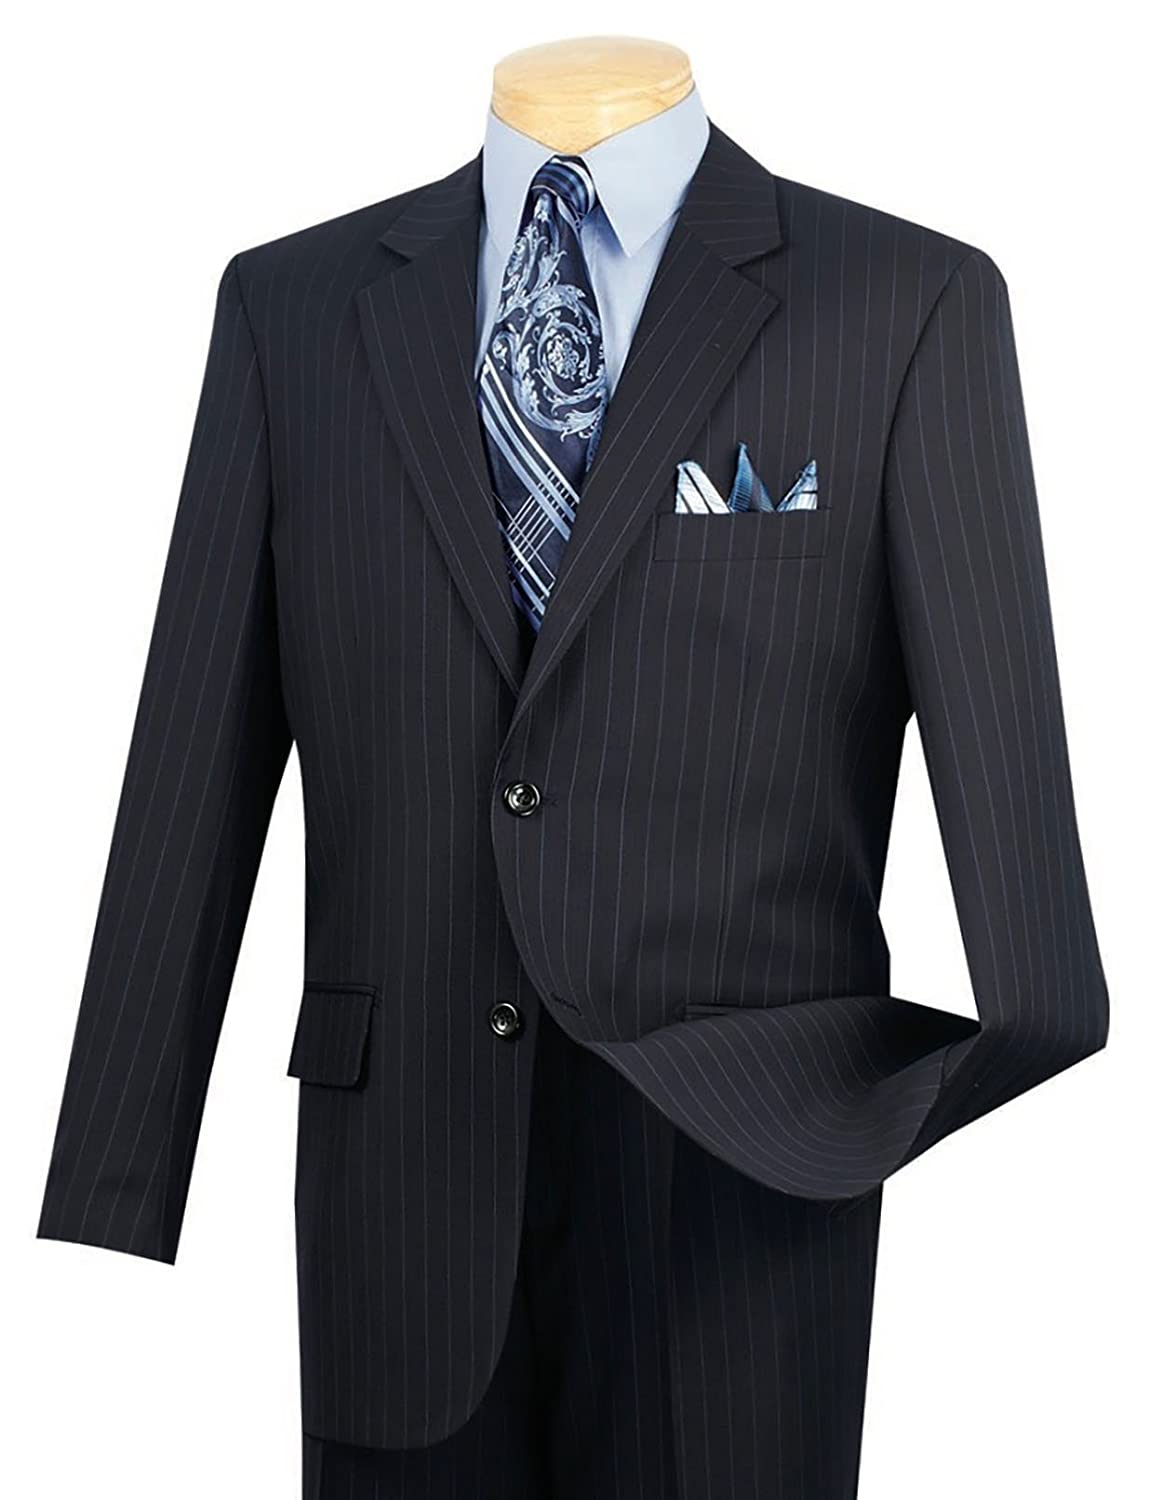 1940s Men's Suit History and Styling Tips VINCI Mens Pinstriped 2 Button Classic-Fit Suit New $99.95 AT vintagedancer.com